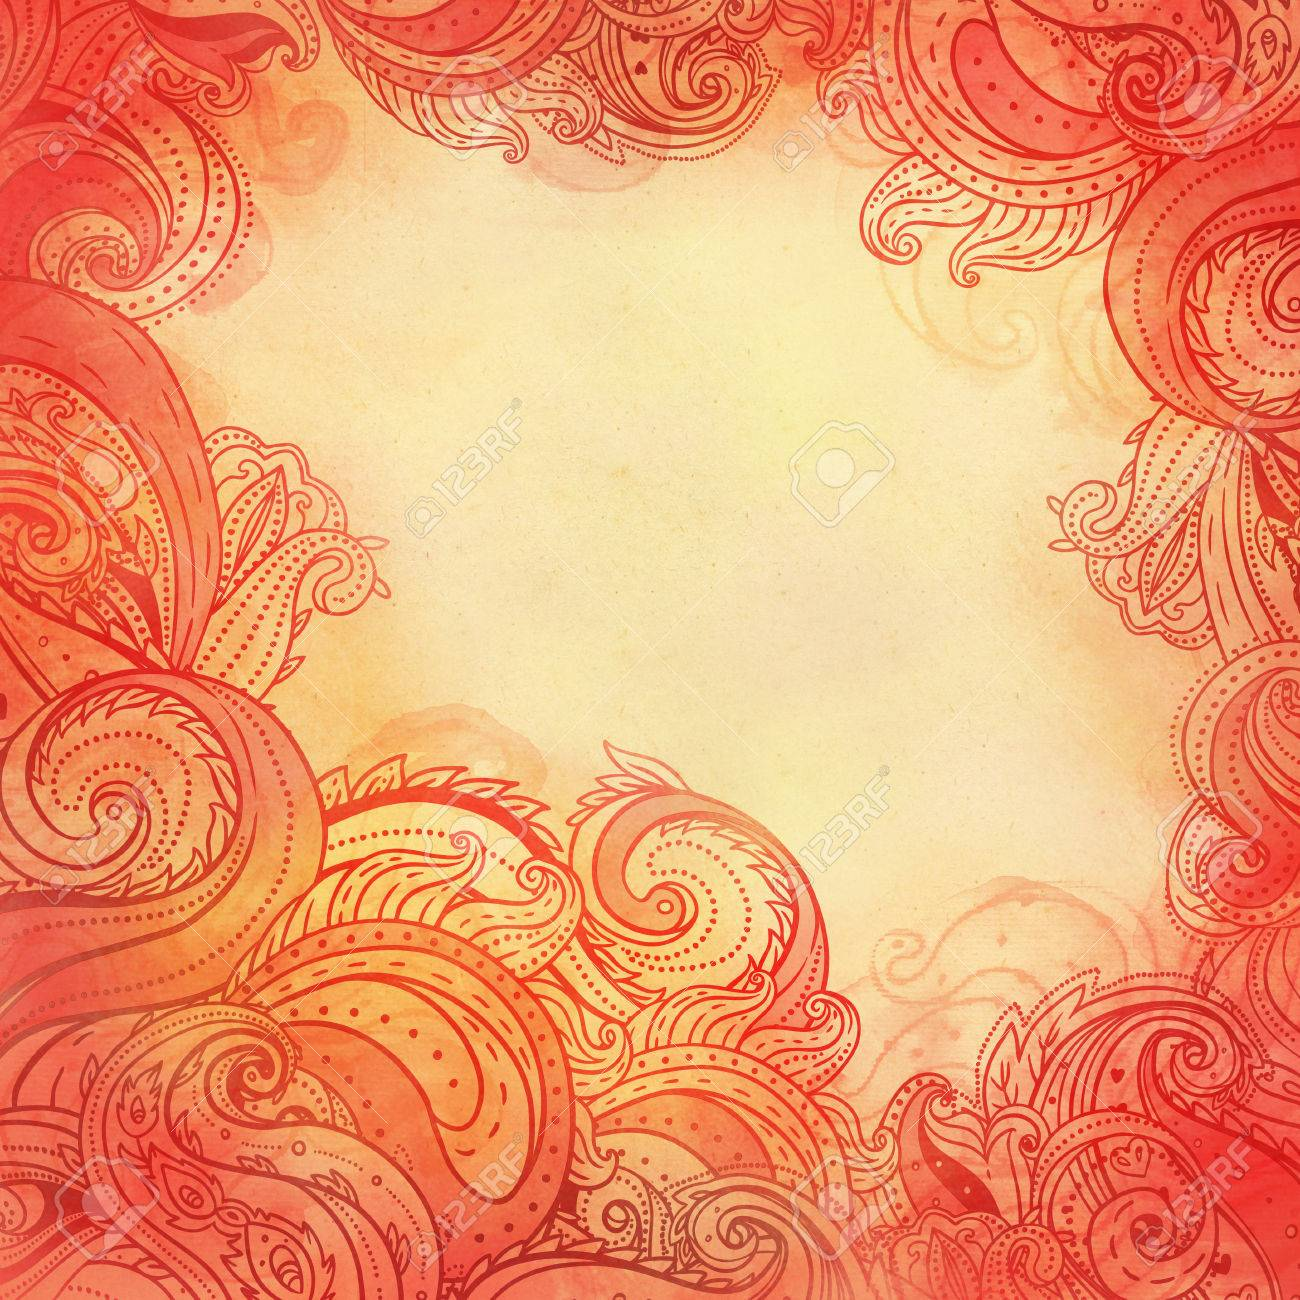 Paisley Watercolor Patterned Frame Trendy Modern Wallpaper Or